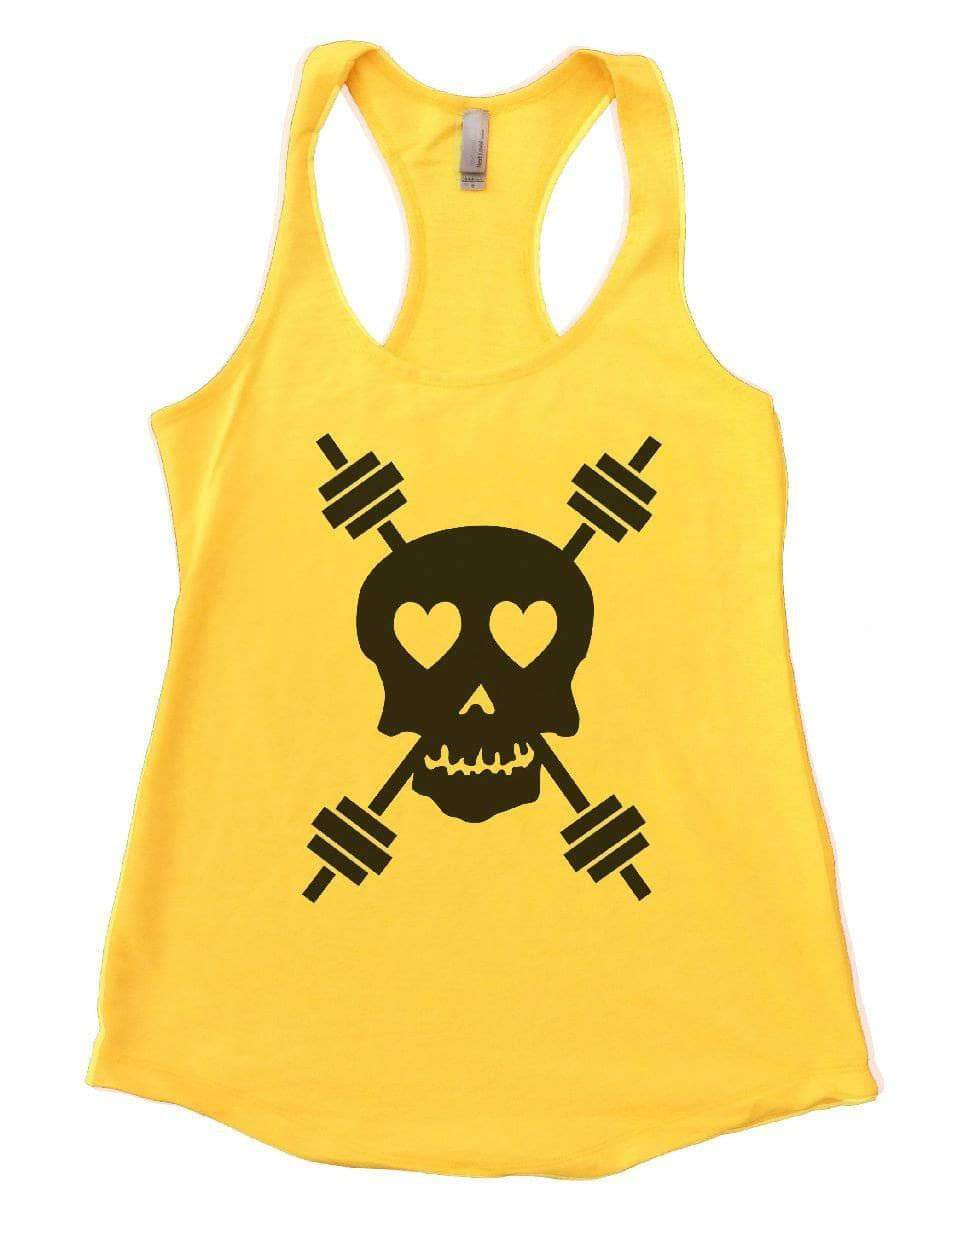 Skull Womens Workout Tank Top Small Womens Tank Tops Yellow